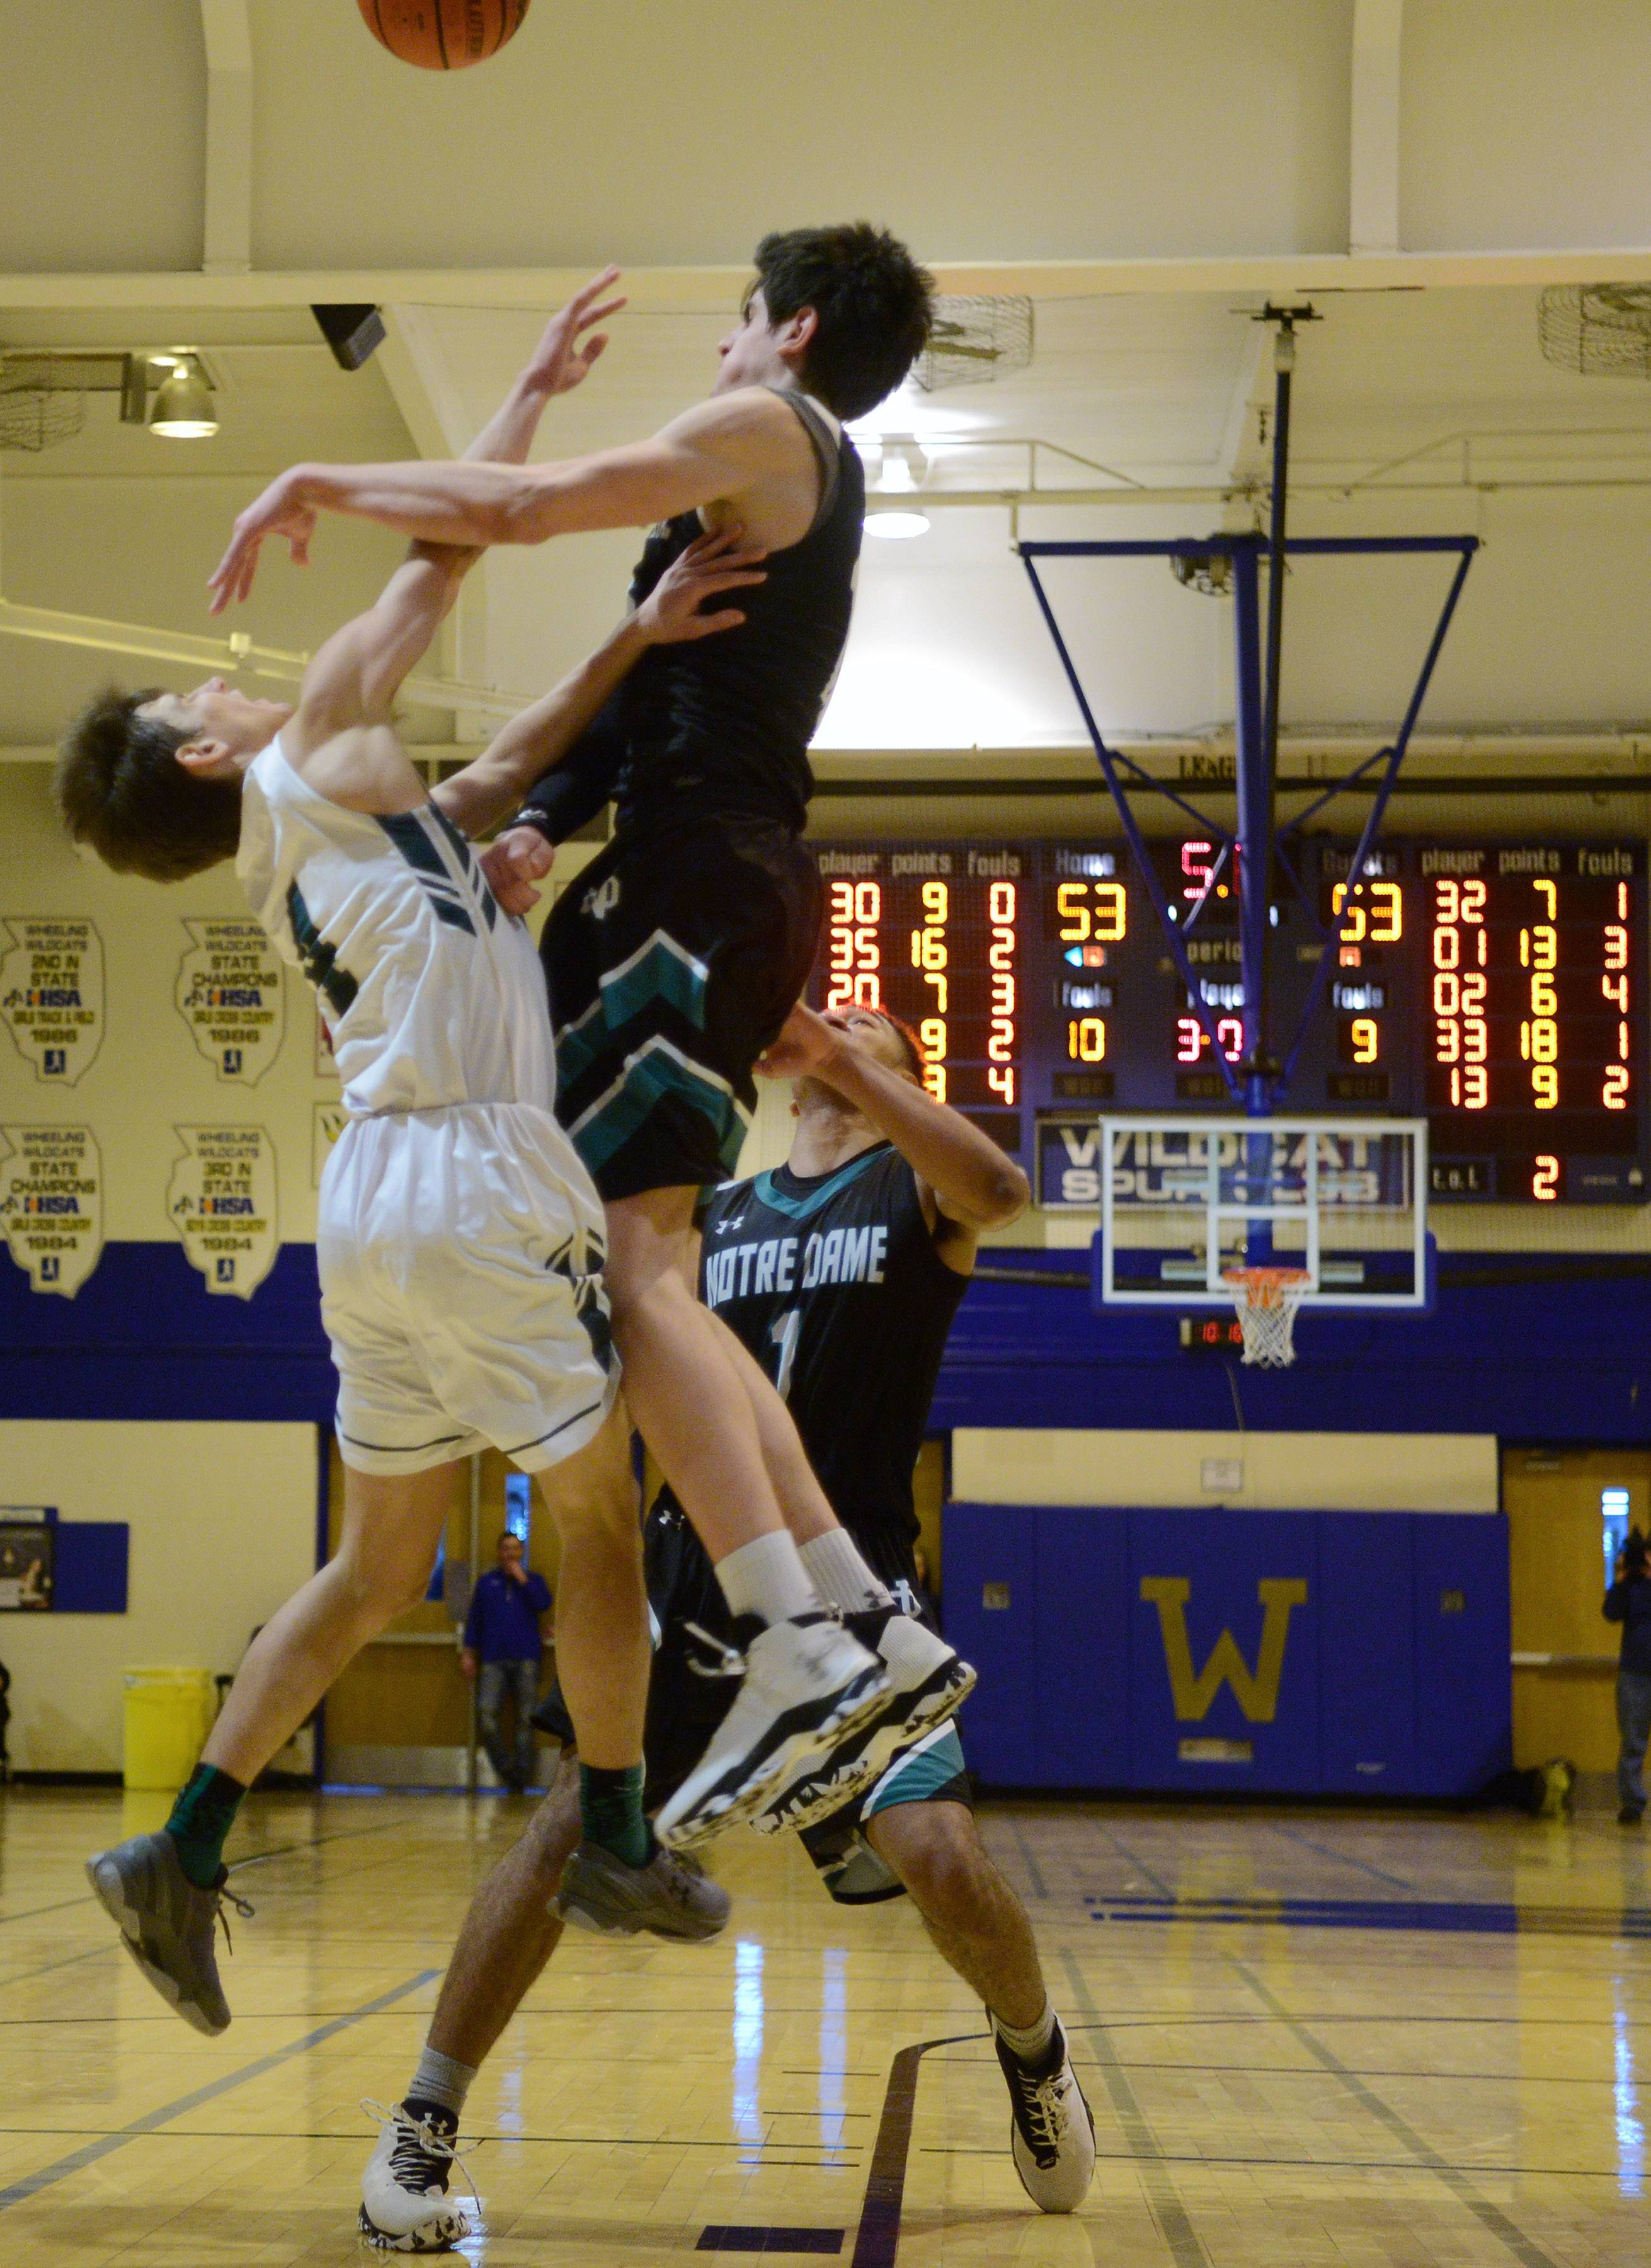 With the game tied at 53-53 in overtime, Fremd's Kyle Sliwa, left, collides with Notre Dame's Dusan Mahorcic during the championship game of the Wheeling Hardwood Classic on Friday.